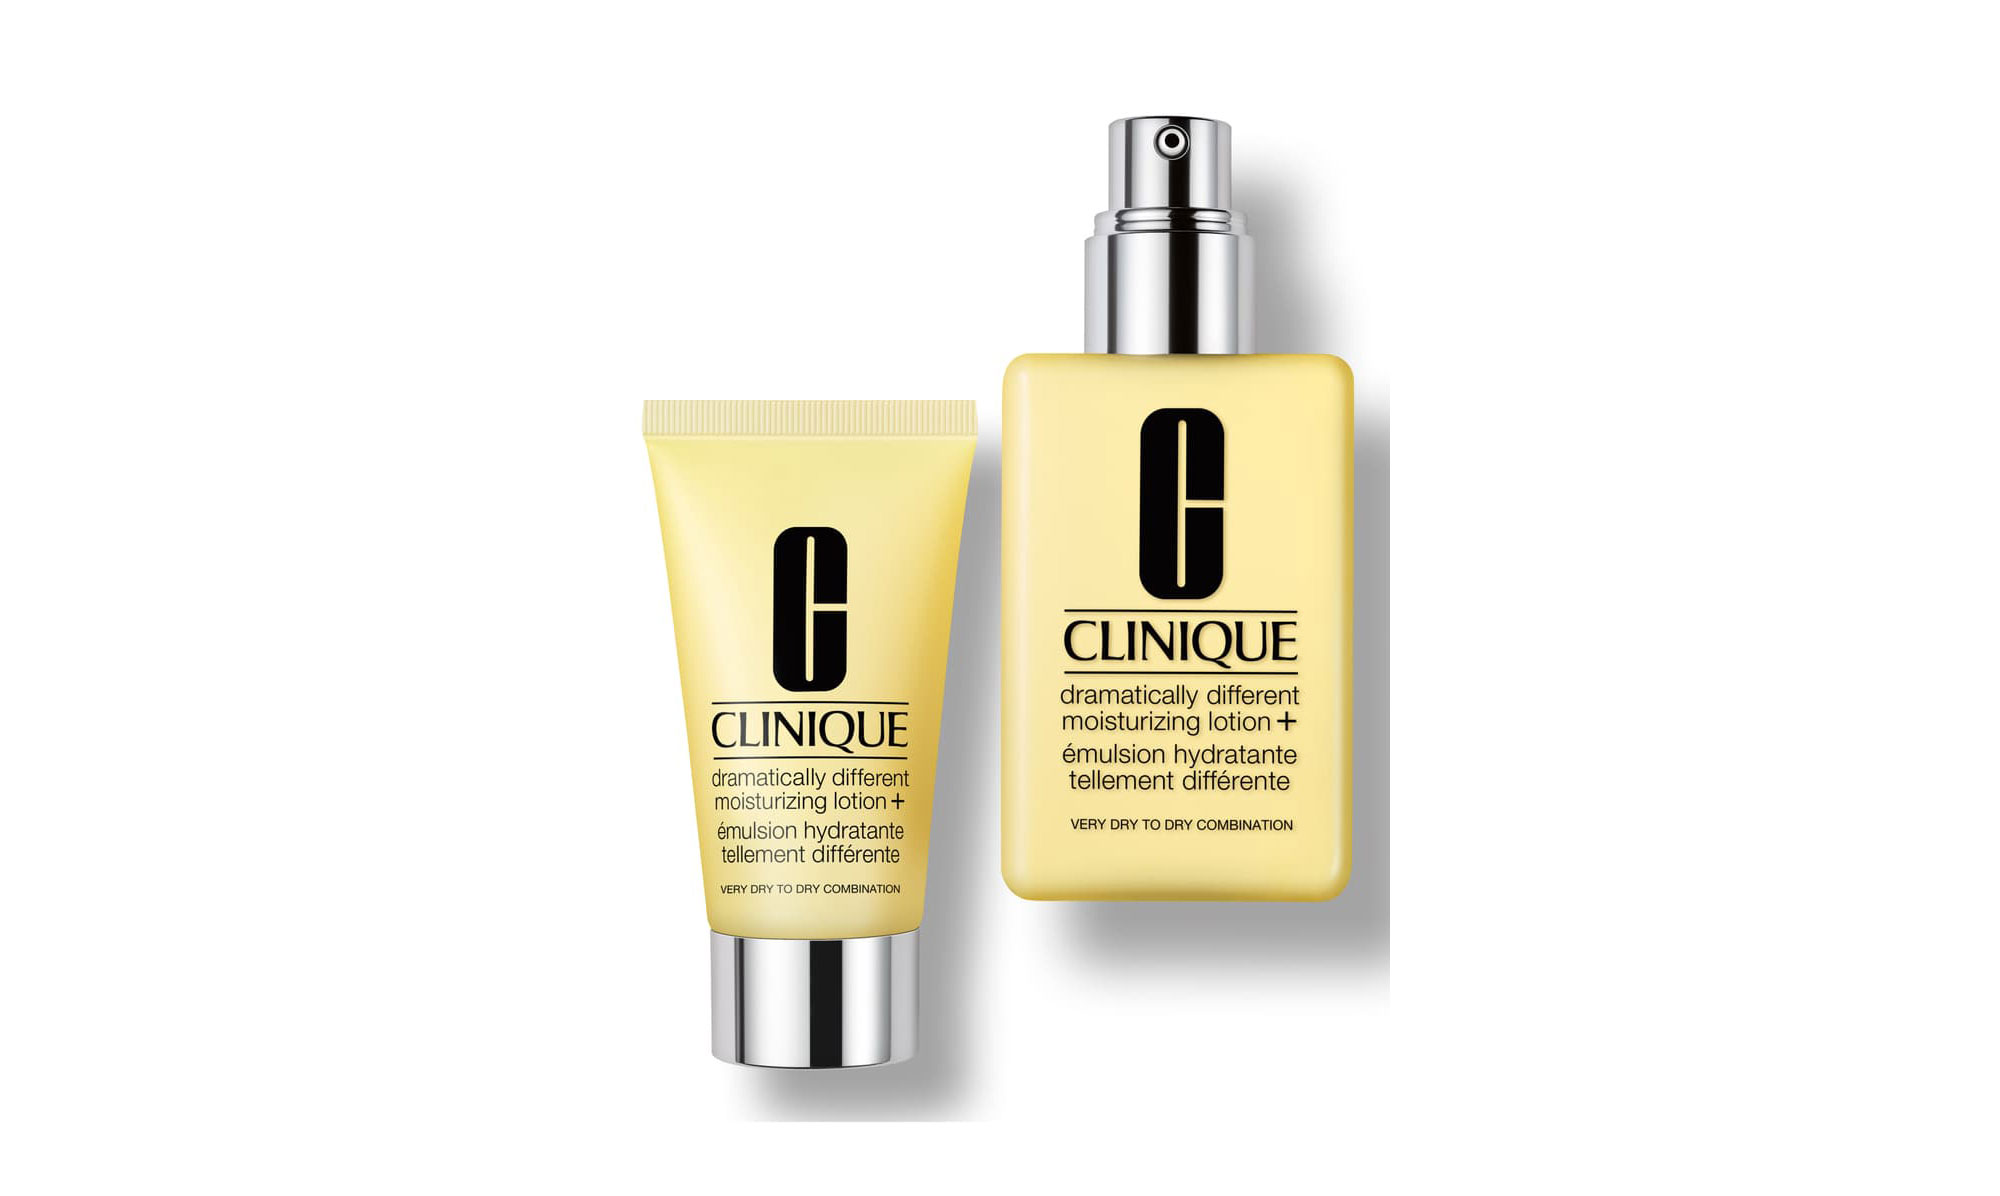 Clinique Dramatically Different Moisturizing Duo